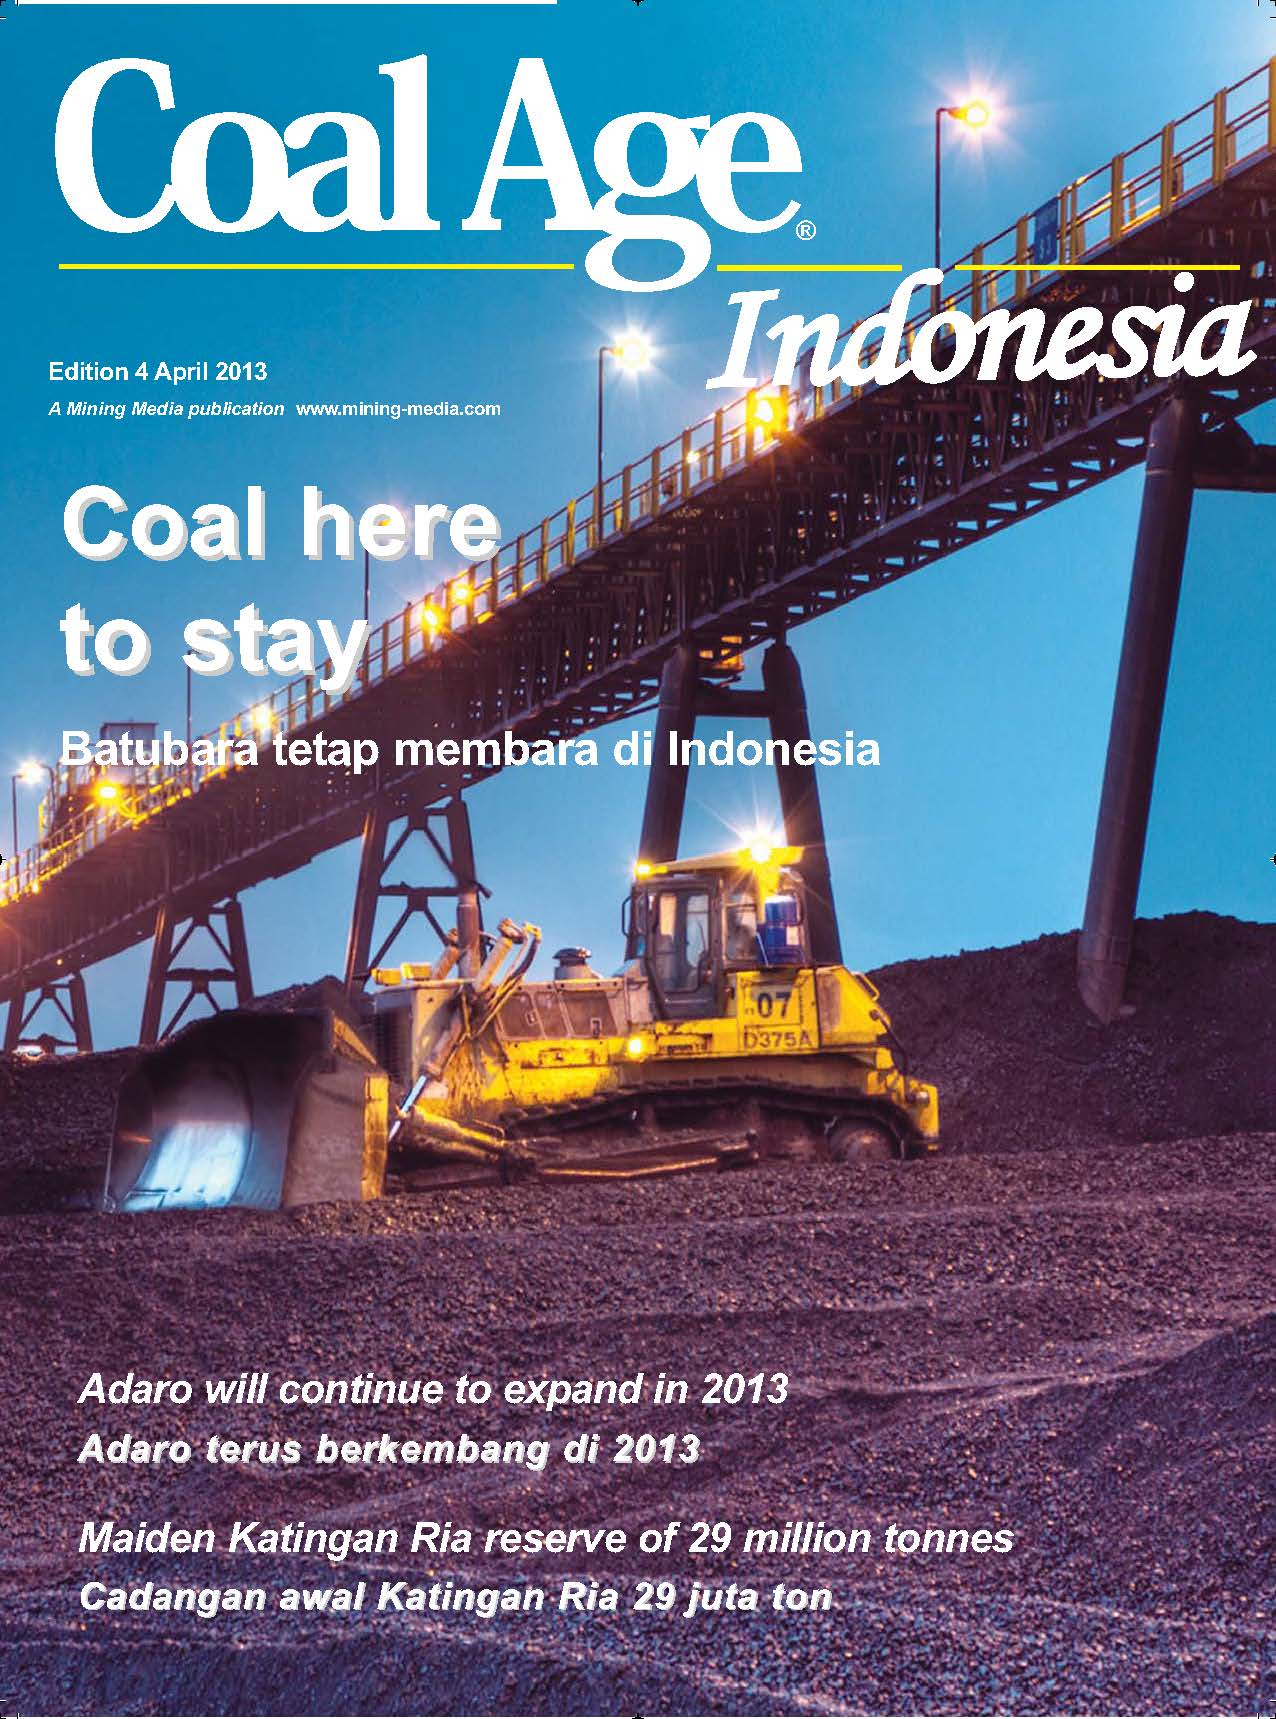 Coal Age Indonesia April 2013 - Coal Here to stay, batubara tetap membara di indonisia, adaro, maiden katingan ria